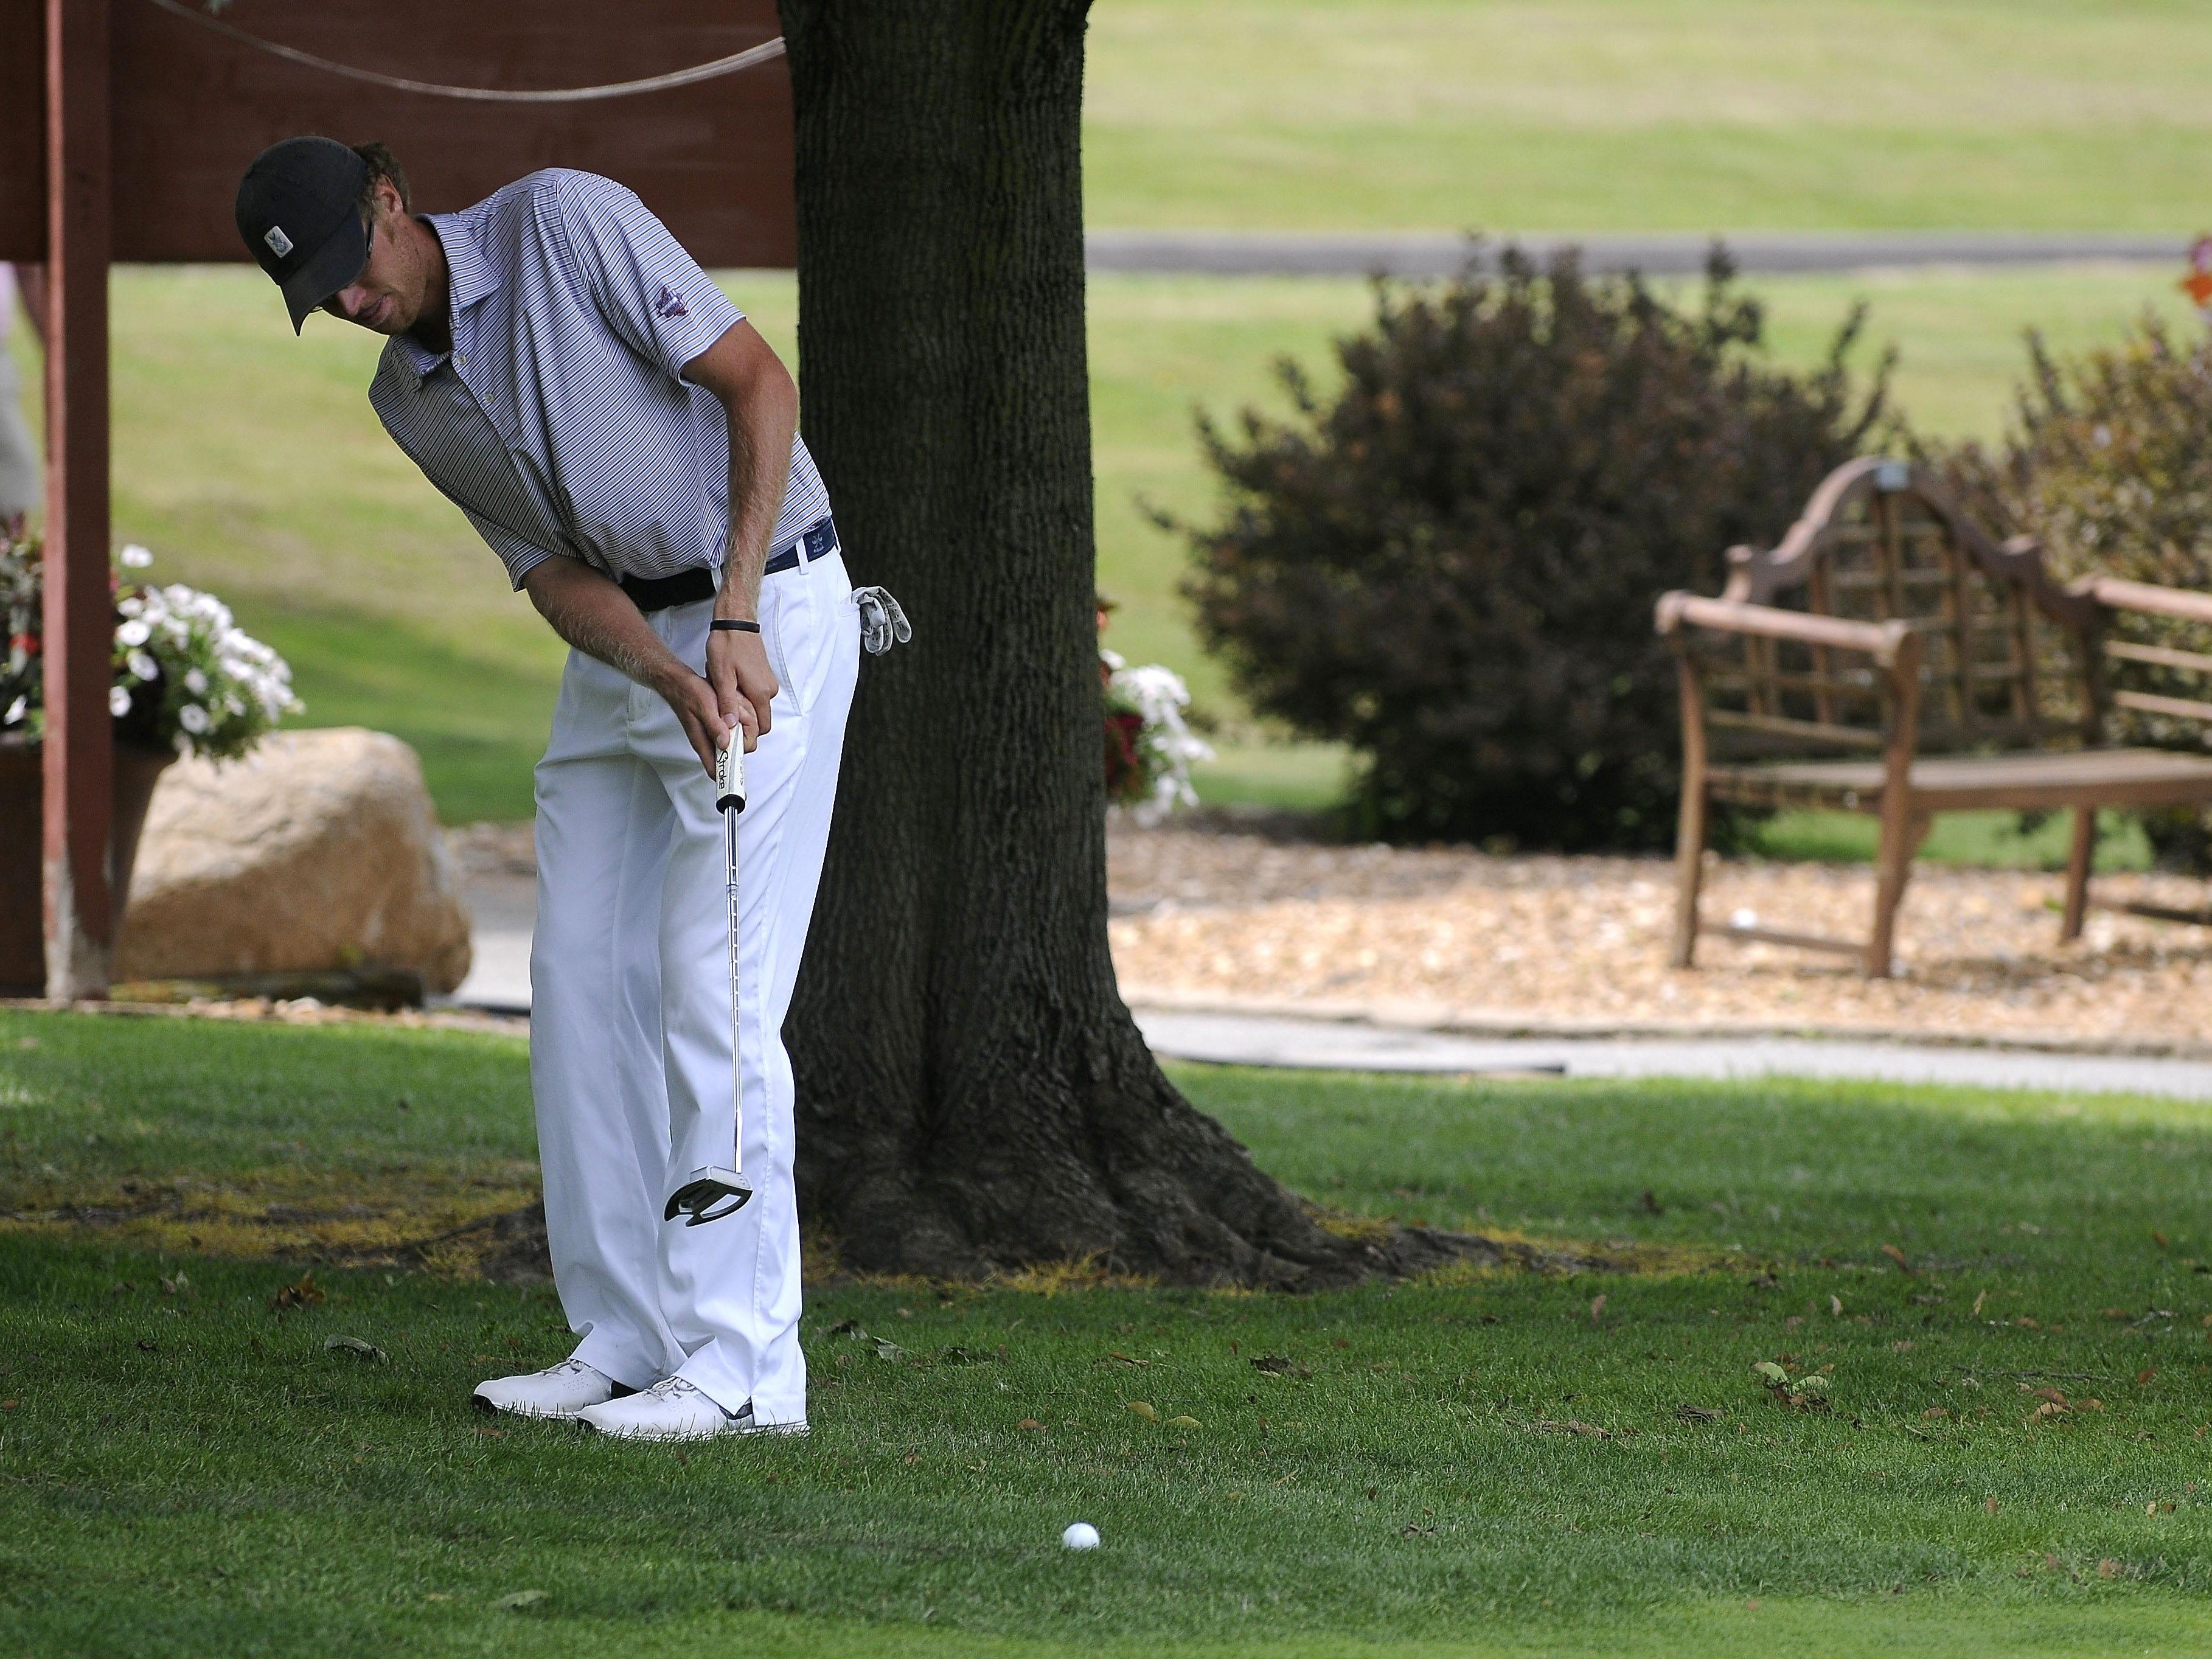 Patrick Cansfield putts from the rough onto the 18th green Friday, July 10 during the Port Huron Elks 2015 Men's Invitational in Port Huron Township.